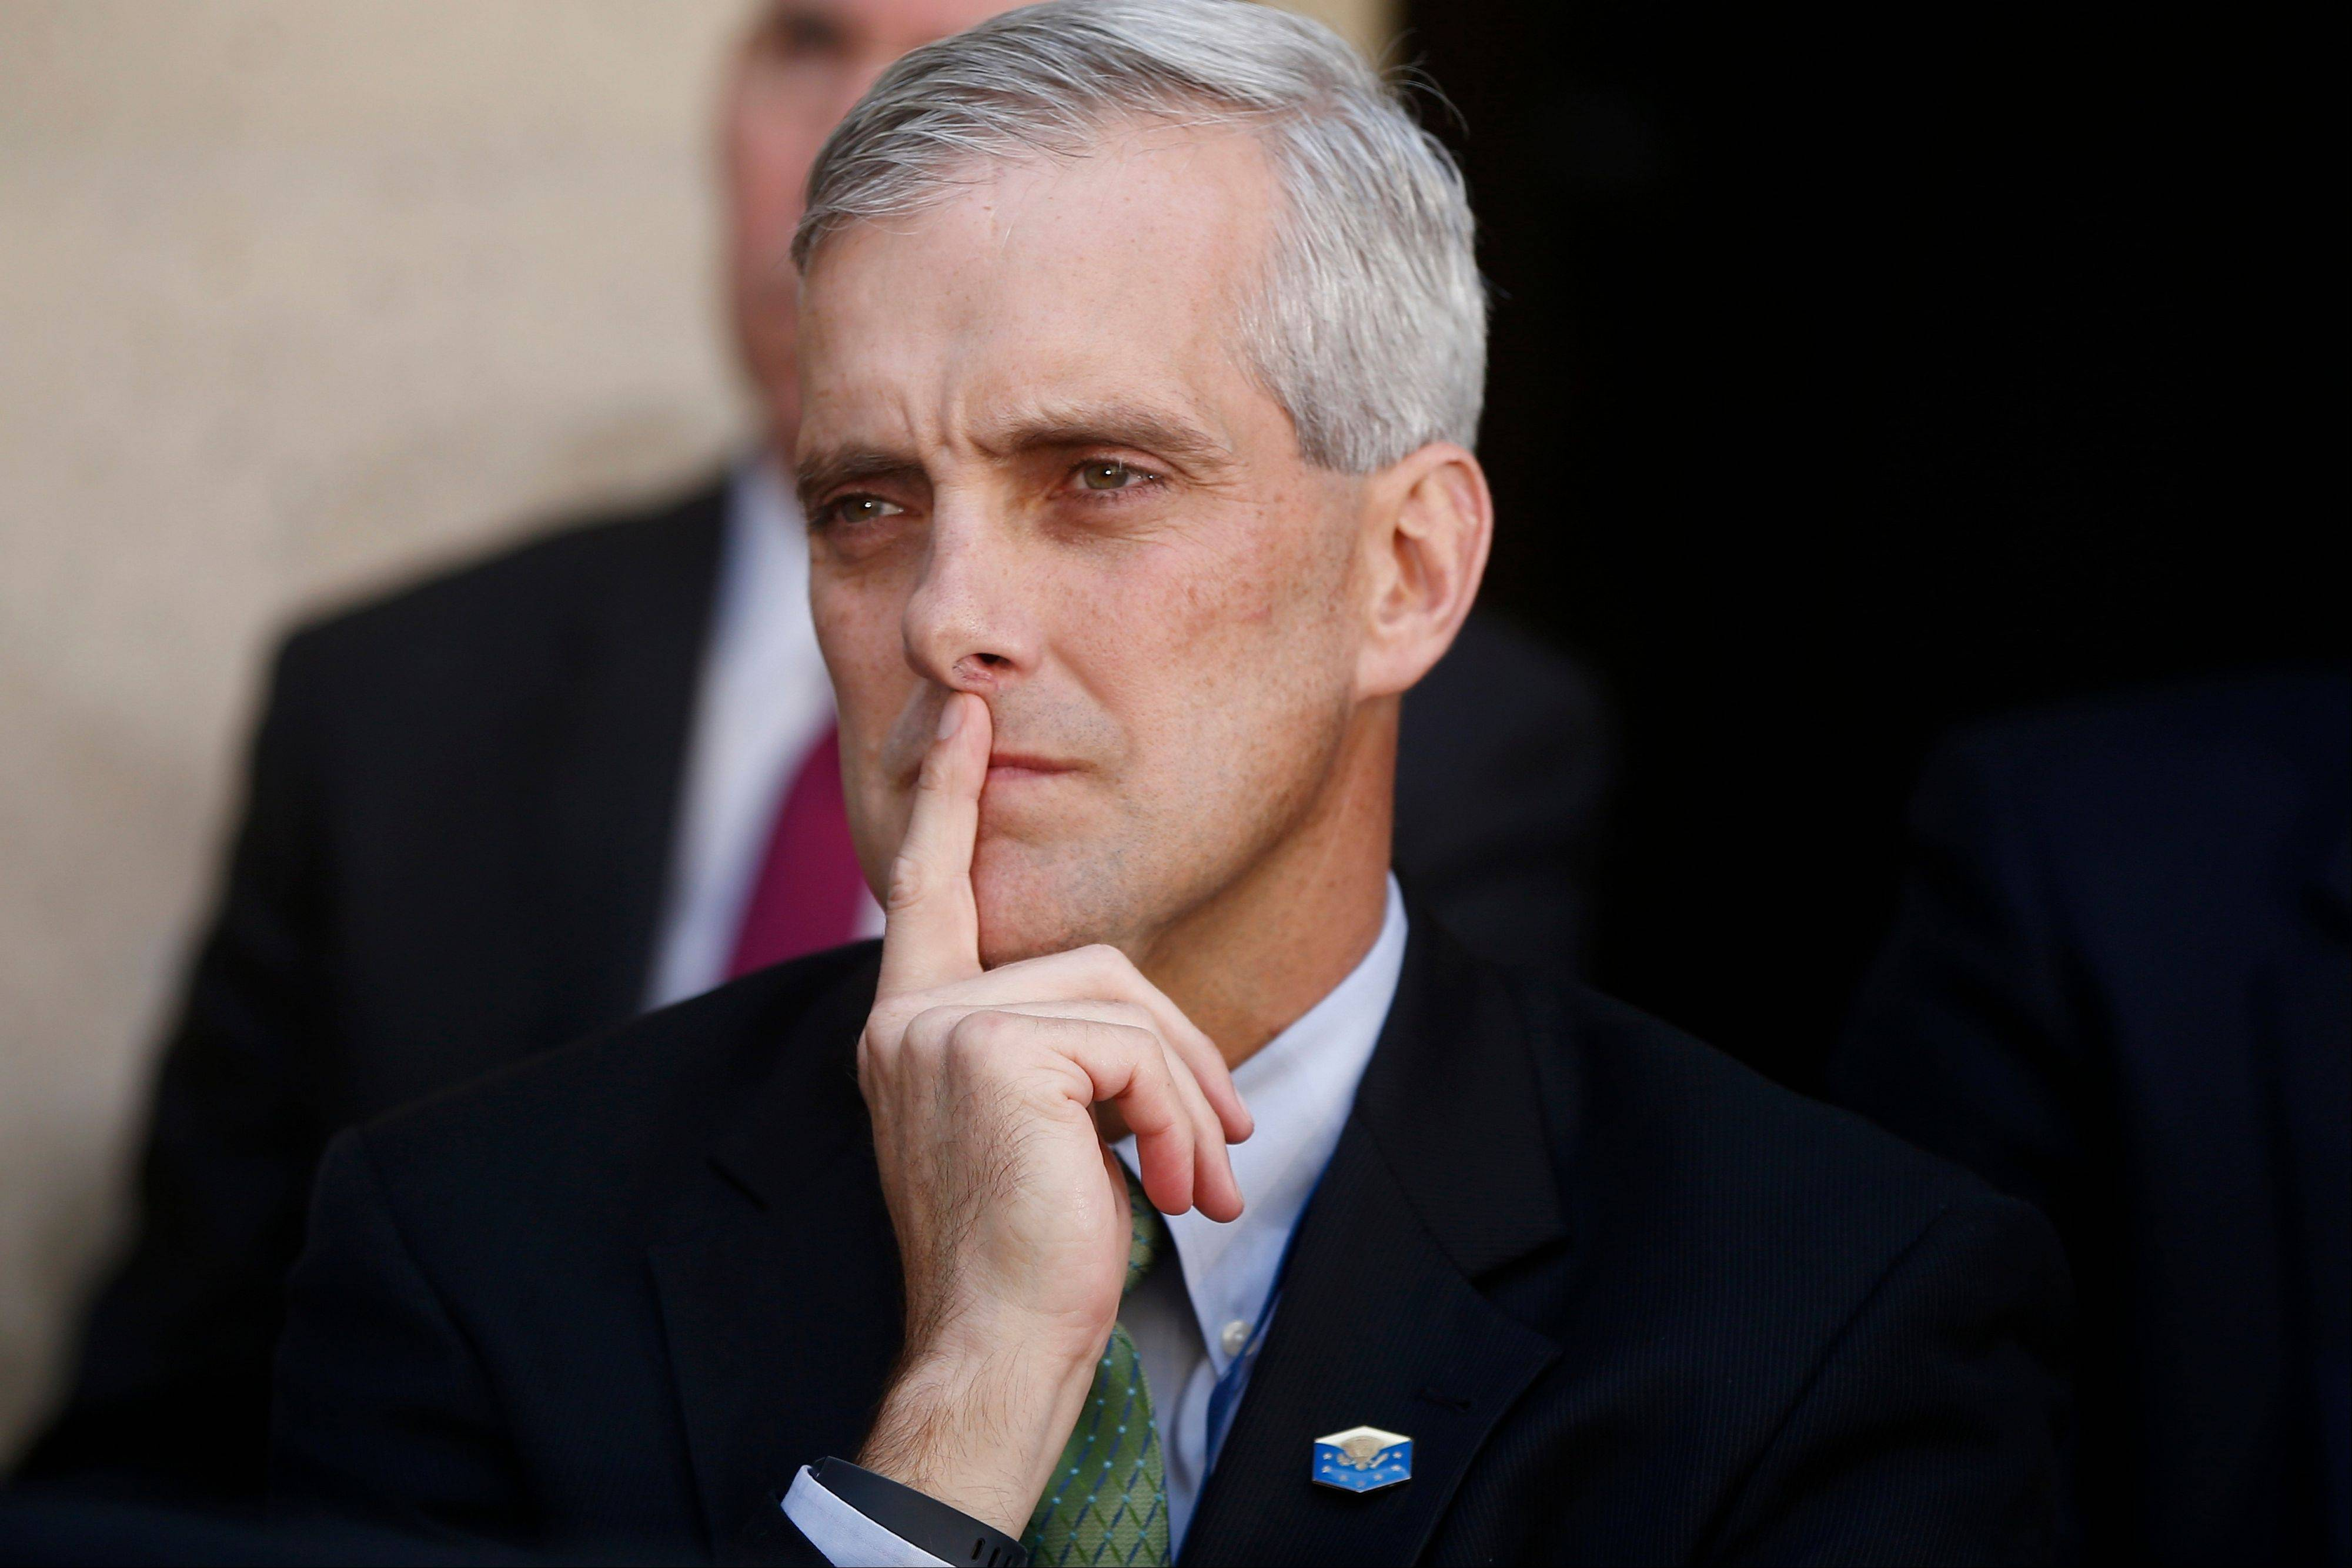 White House Chief of Staff Denis McDonough listens as President Barack Obama speaks at FBI Headquarters in Washington. McDonough has been pushed to the edge by health care advocates anxious over the disastrous rollout of the health care law.